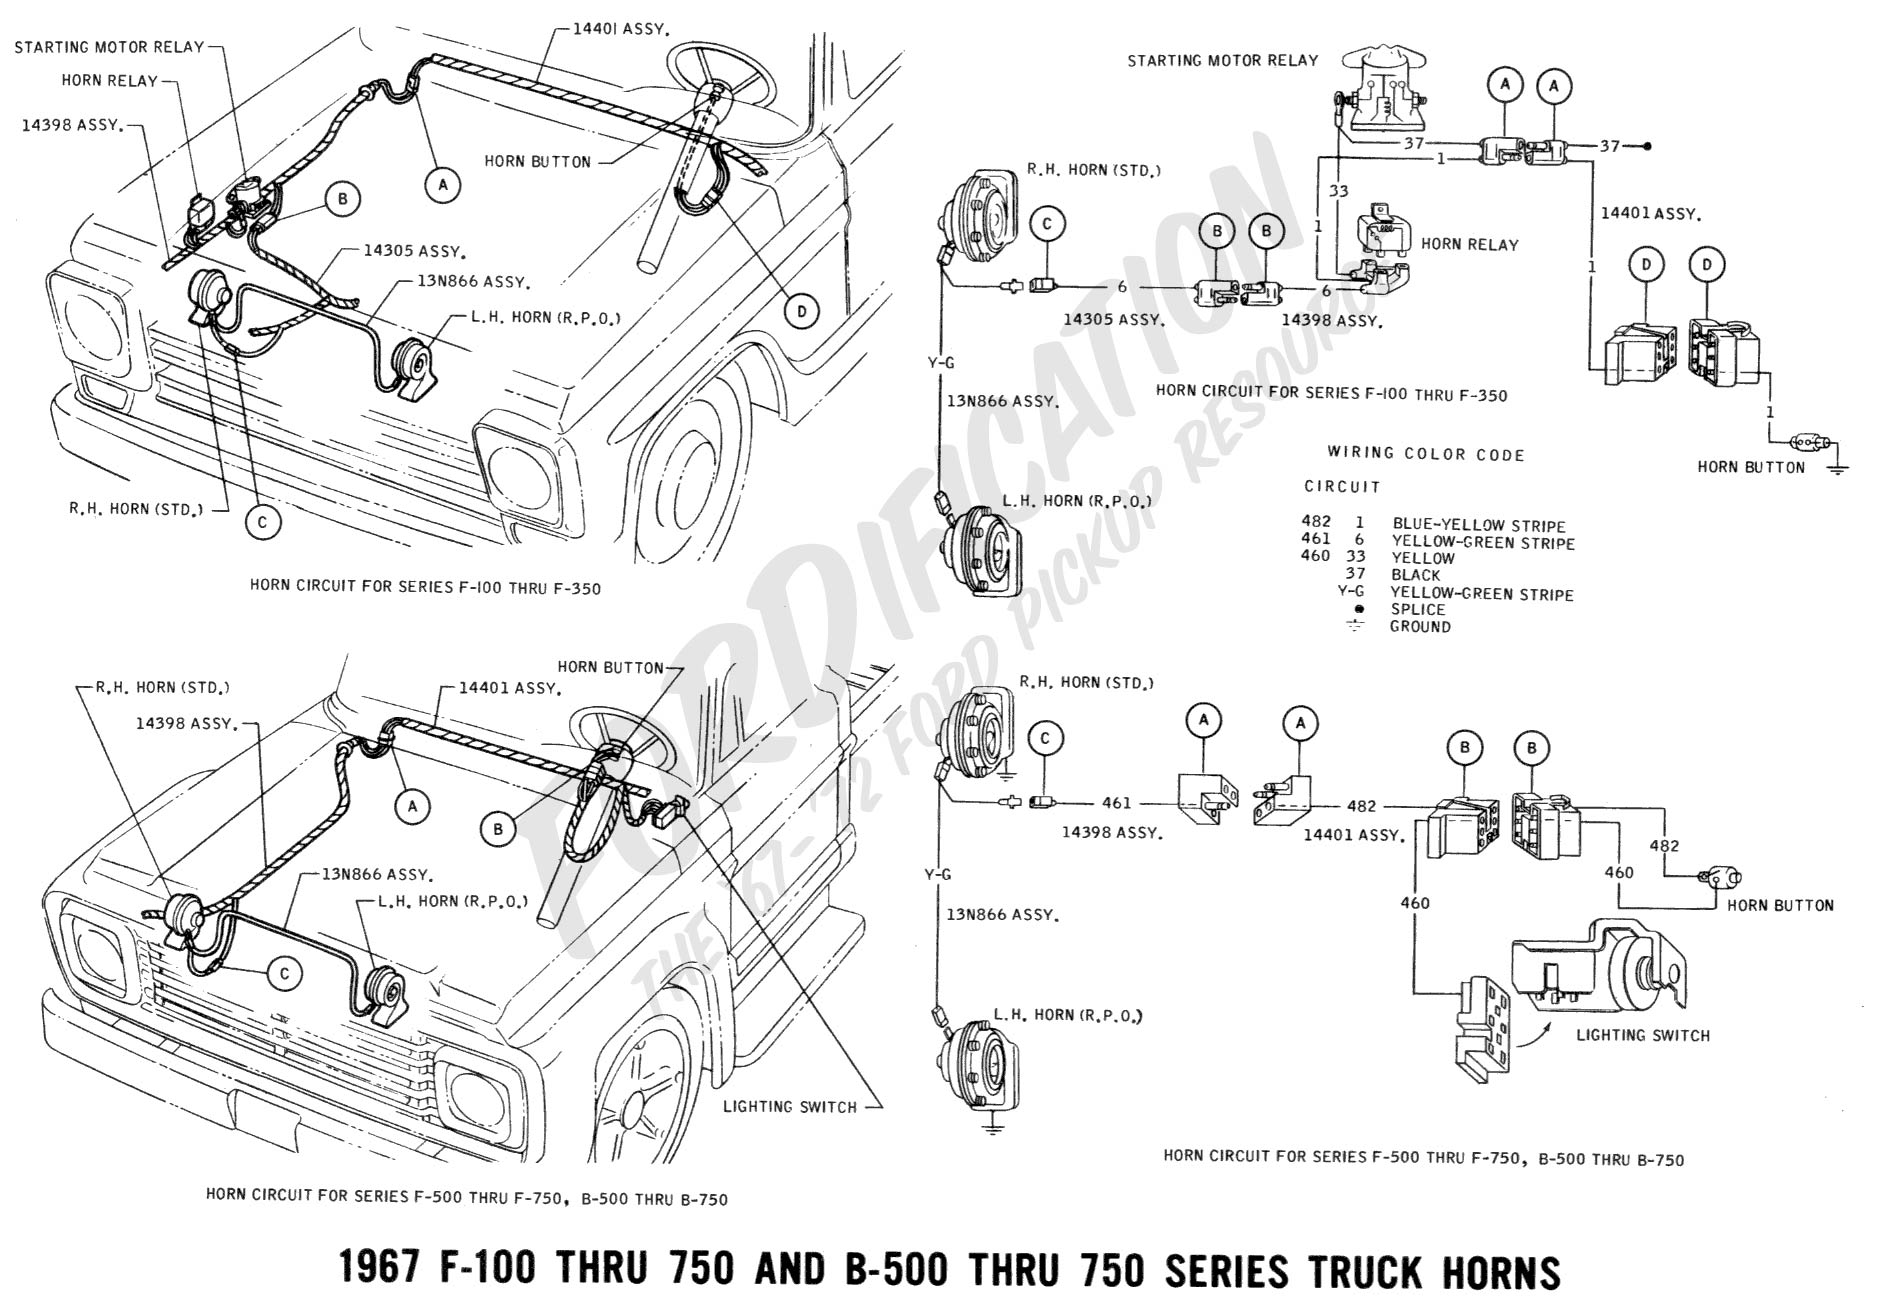 hight resolution of 68 ford truck horn wire diagram schema wiring diagram1967 f100 heater wiring diagram wiring diagrams 68